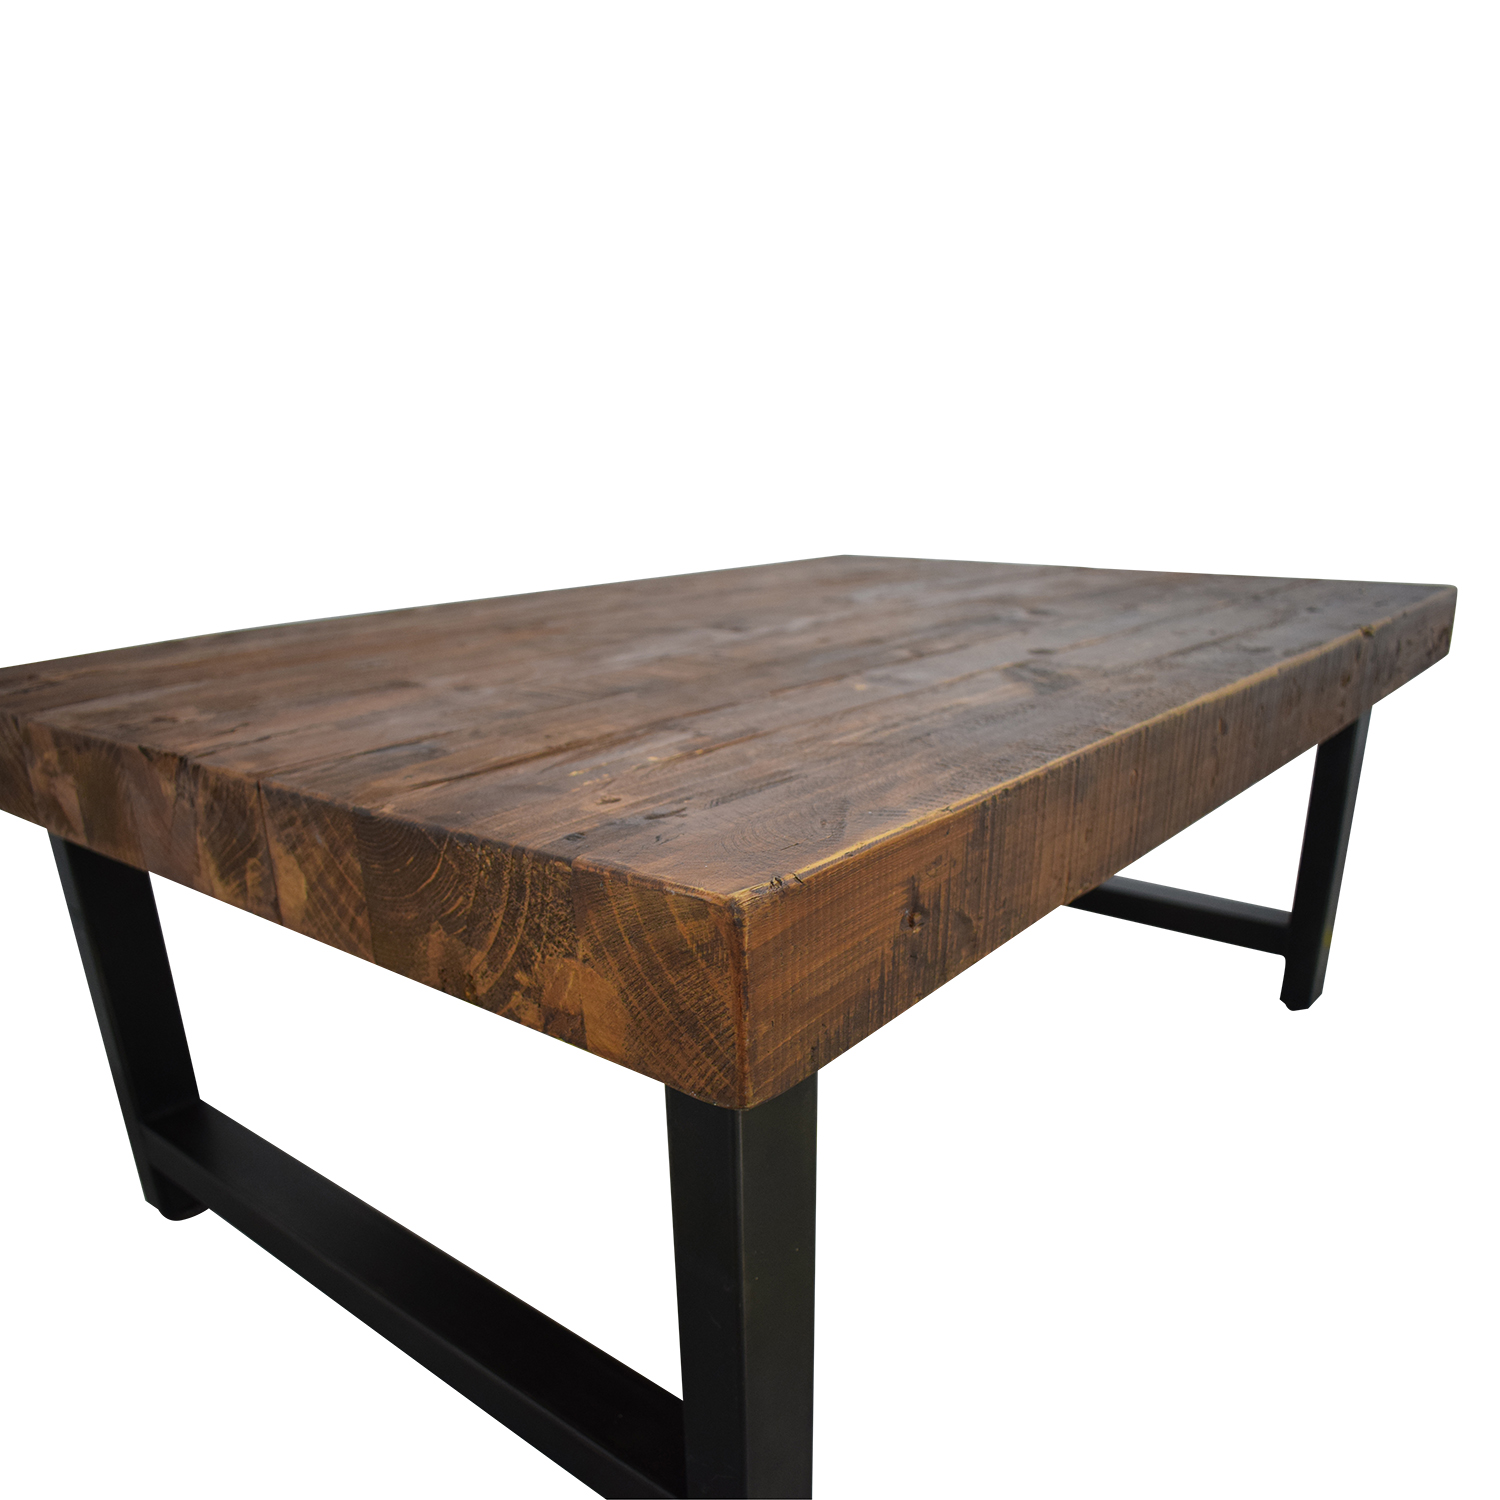 69 off pottery barn pottery barn griffin reclaimed wood coffee table tables